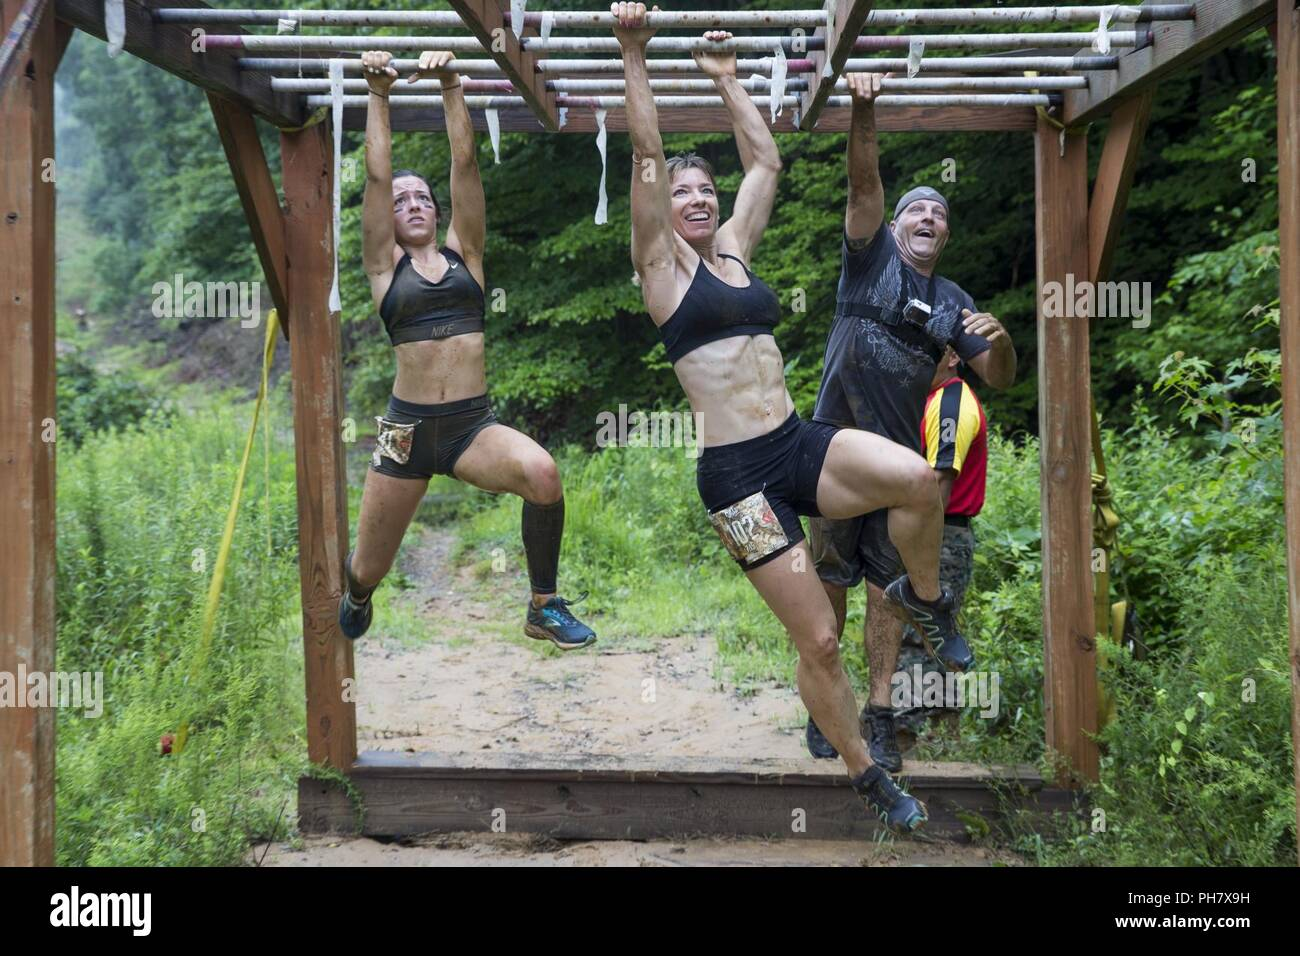 Participants navigate an obstacle during the annual Marine Corps Marathon (MCM) Run Amuck at Marine Corps Base Quantico, Va., June 23, 2018. The Run Amuck is the MCM's messiest mud and obstacle course consisting of a four-mile trail with 21 challenges to include body weight exercises, rope climbs, and mud pits. - Stock Image